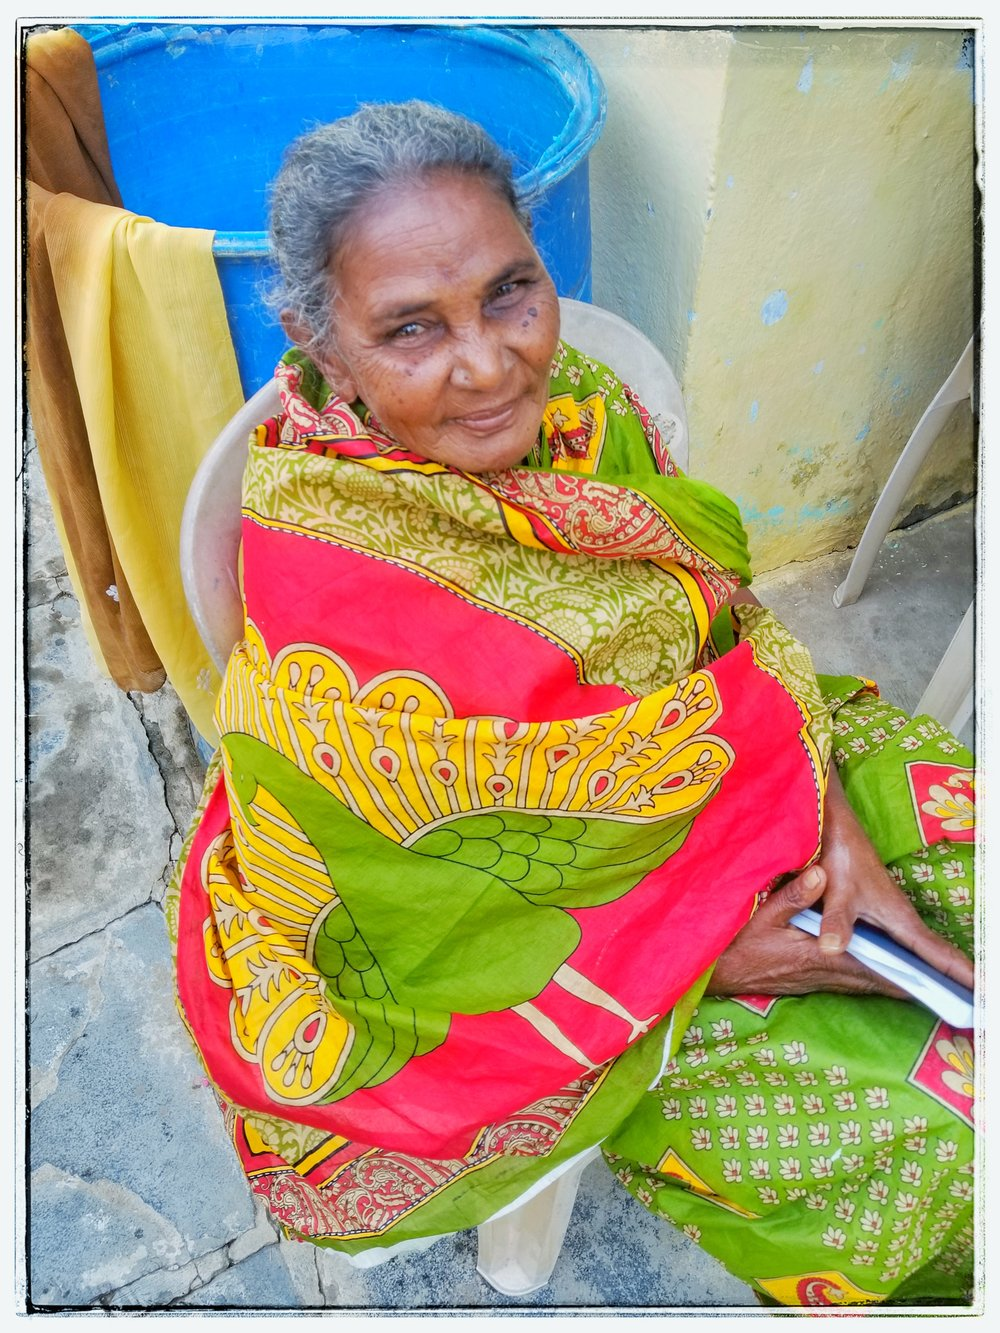 Widow in India. When a husband dies the oldest son gets everything and sometimes tosses his mom on the street.